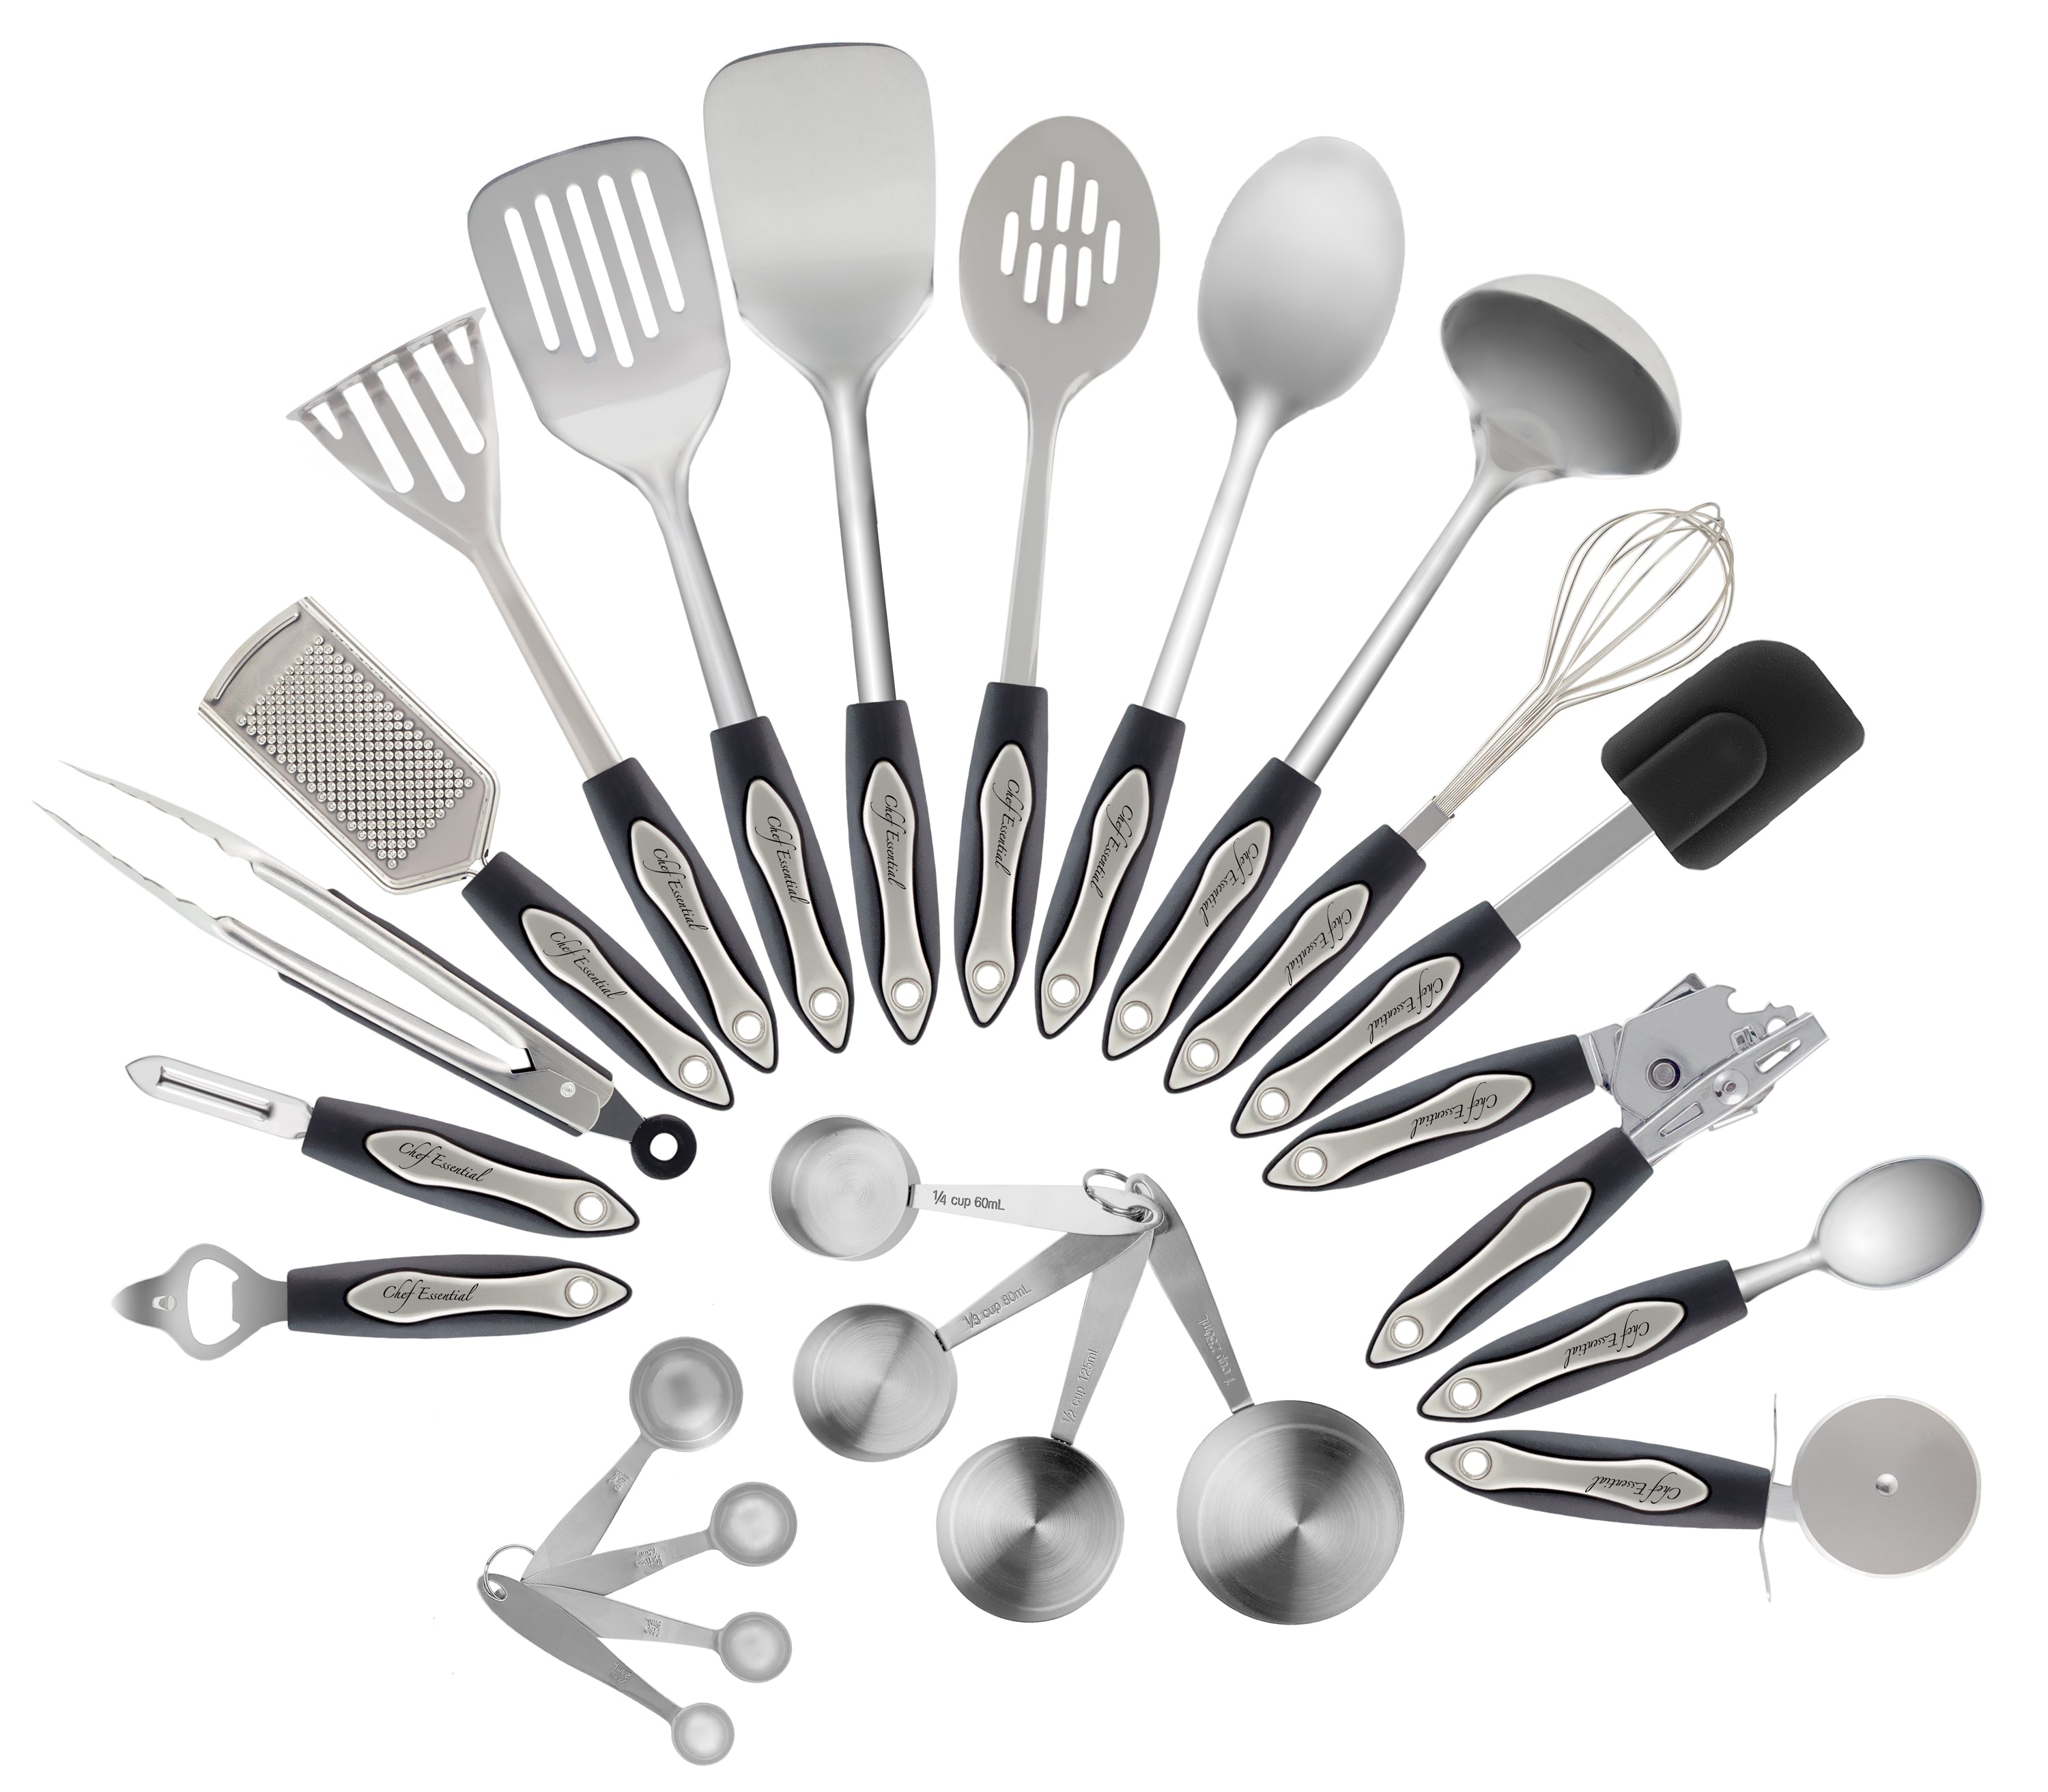 Merveilleux 23 Pc Kitchen Utensil Set, Premium Quality 304 Grade Stainless Steel  Material, Everything You Need For Cooking Included, Great Gift Idea For  Your Loved One.